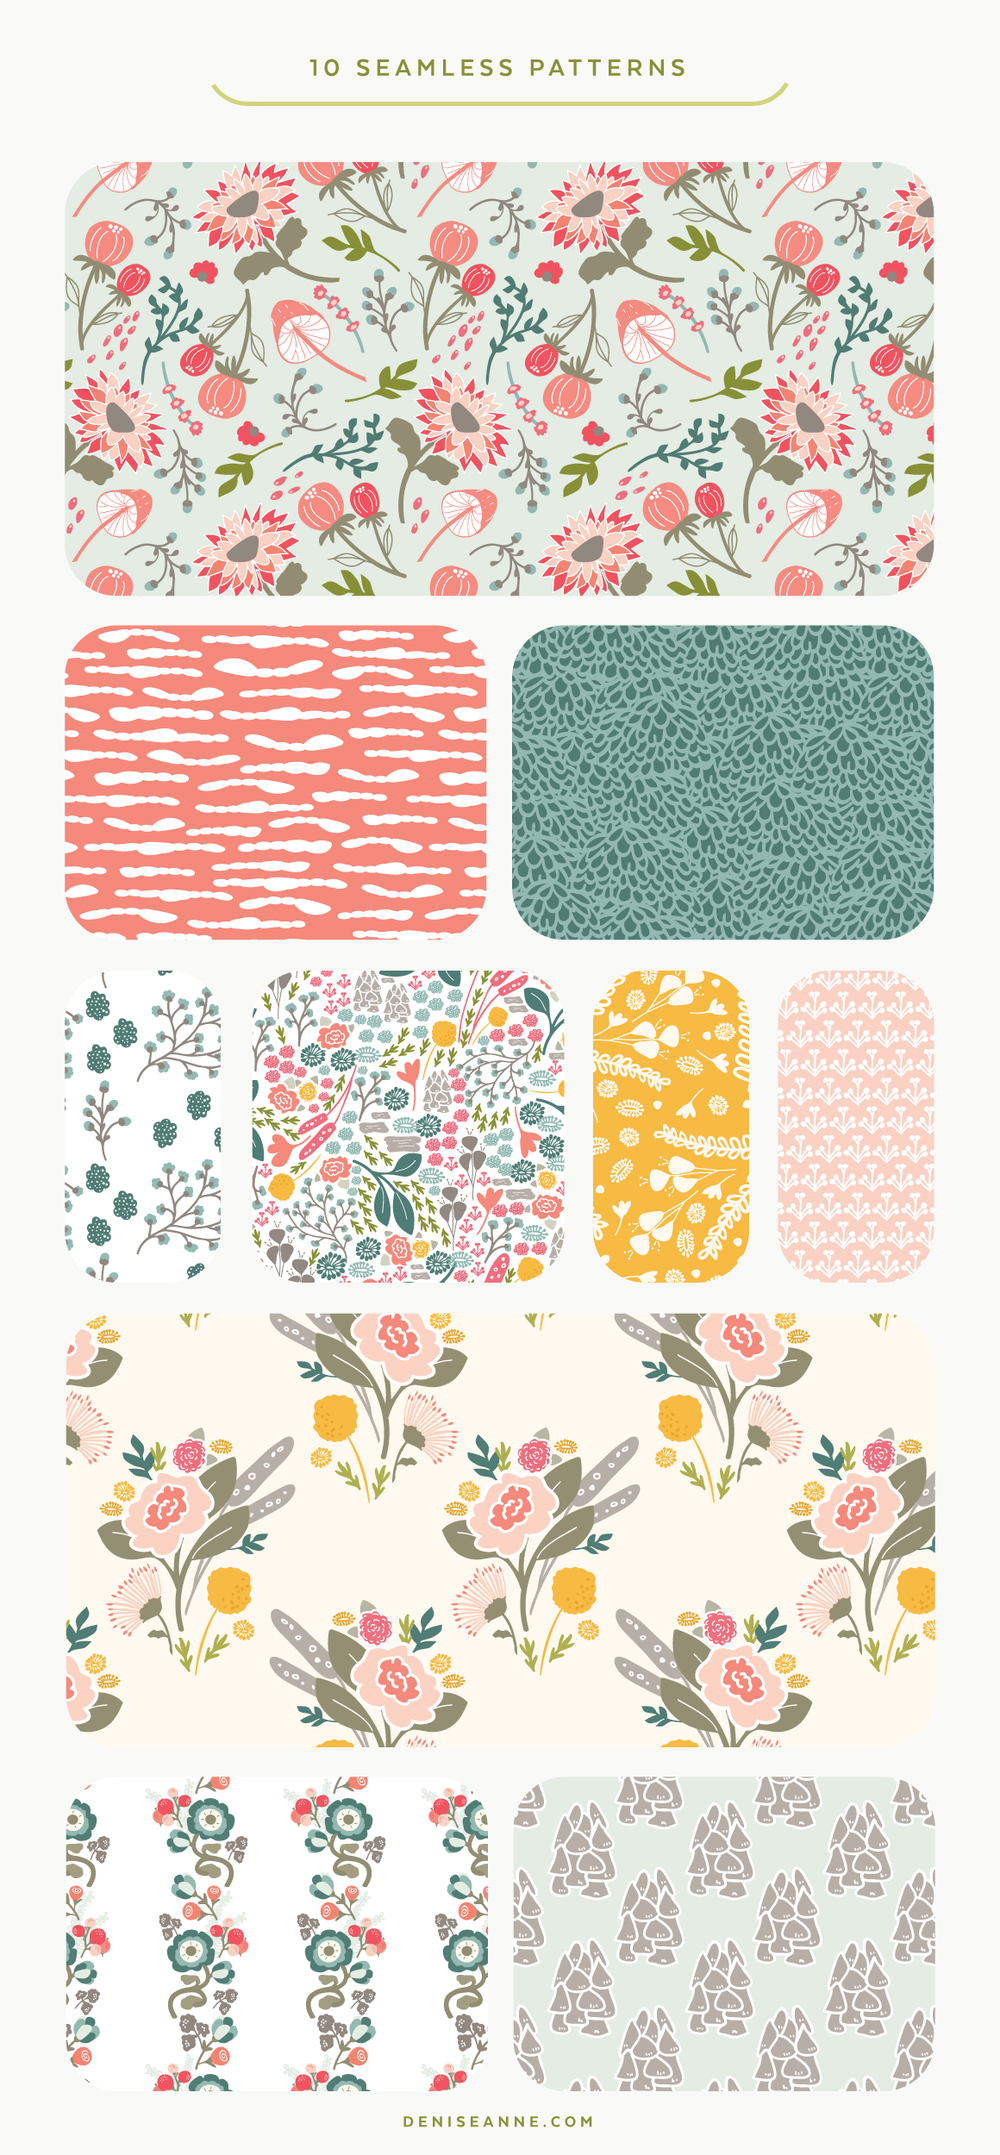 wild-flora-patterns-10-seamless